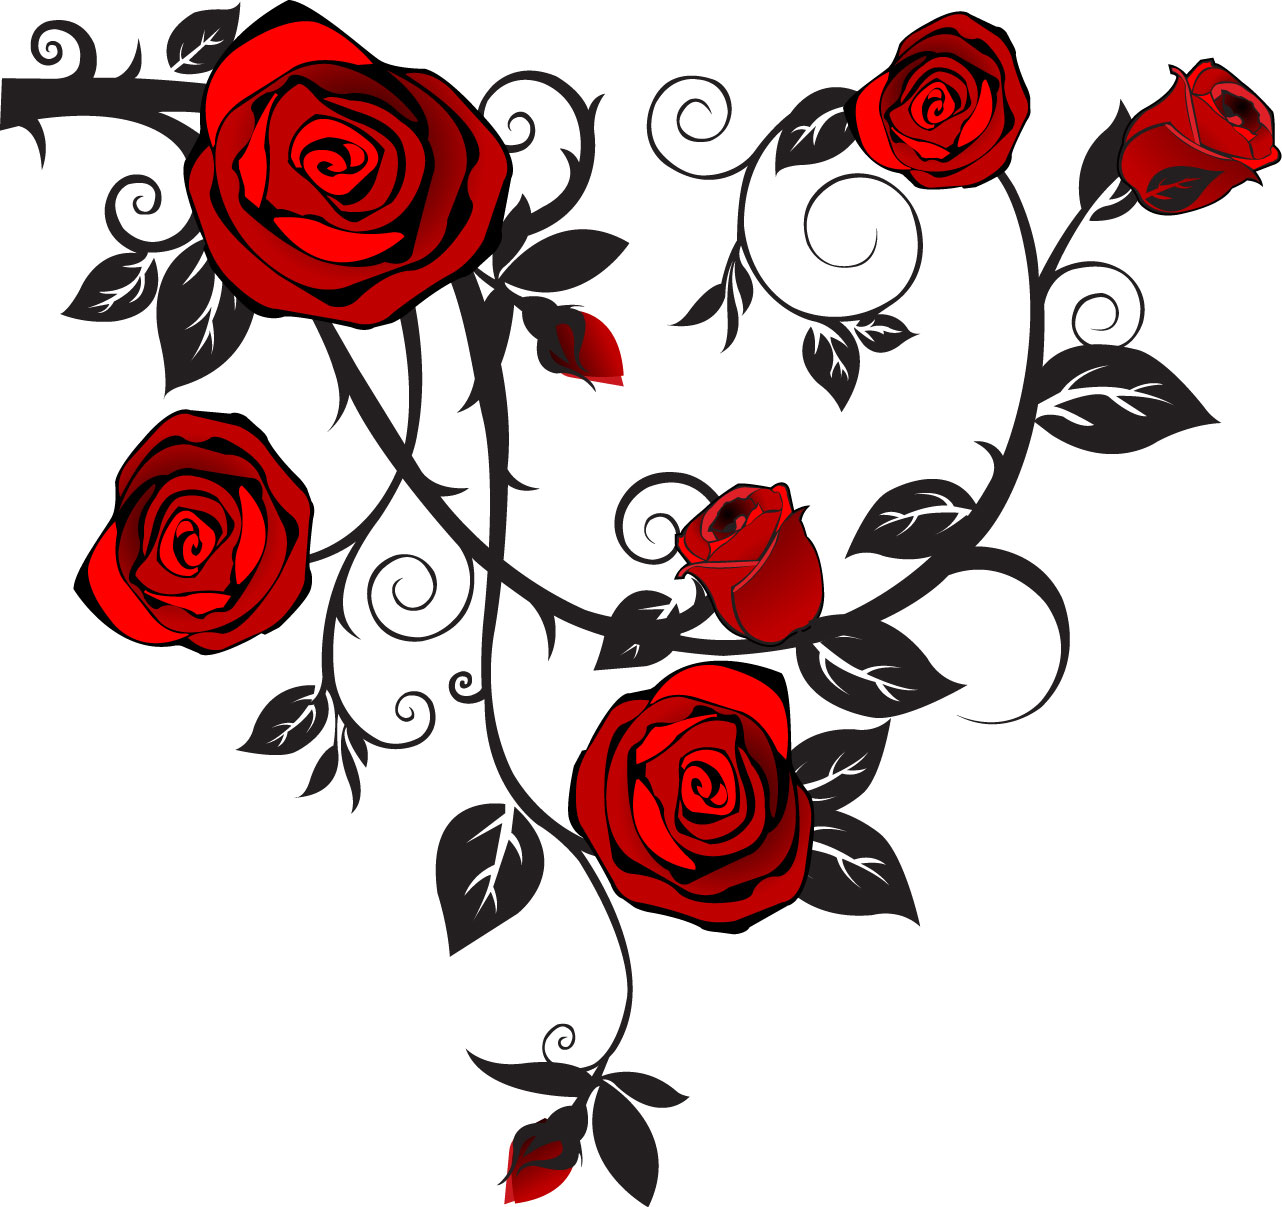 Free vector roses.